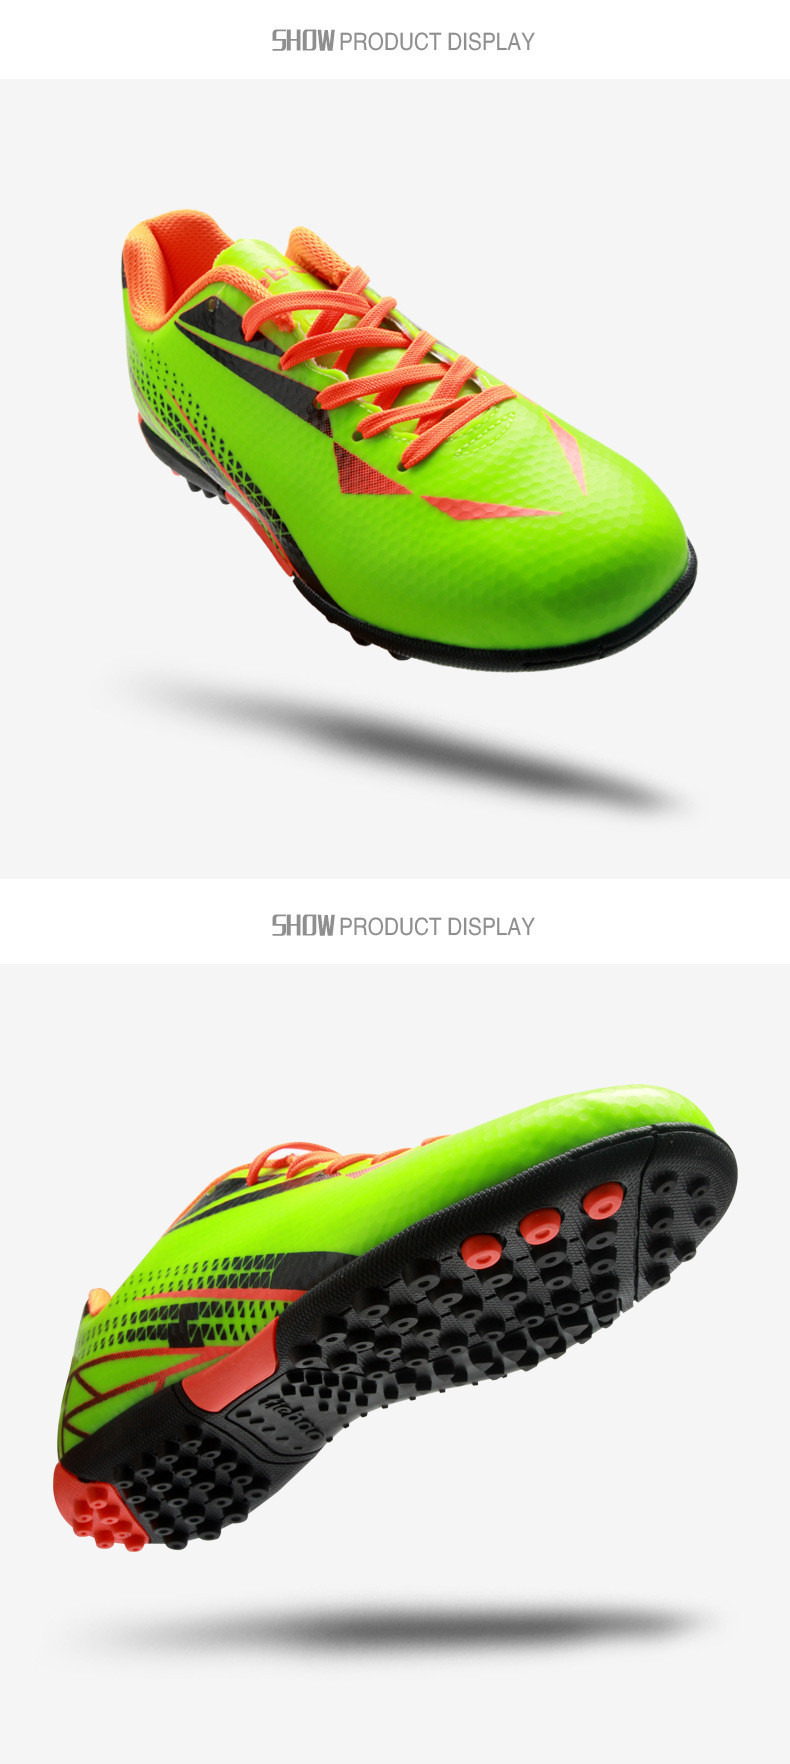 new soccer shoes boots futsal chaussures foot mens indoor football boots voetbalschoenen football cleats soccer shoes 3 colorsusd 35 99 pair  [ 790 x 1764 Pixel ]